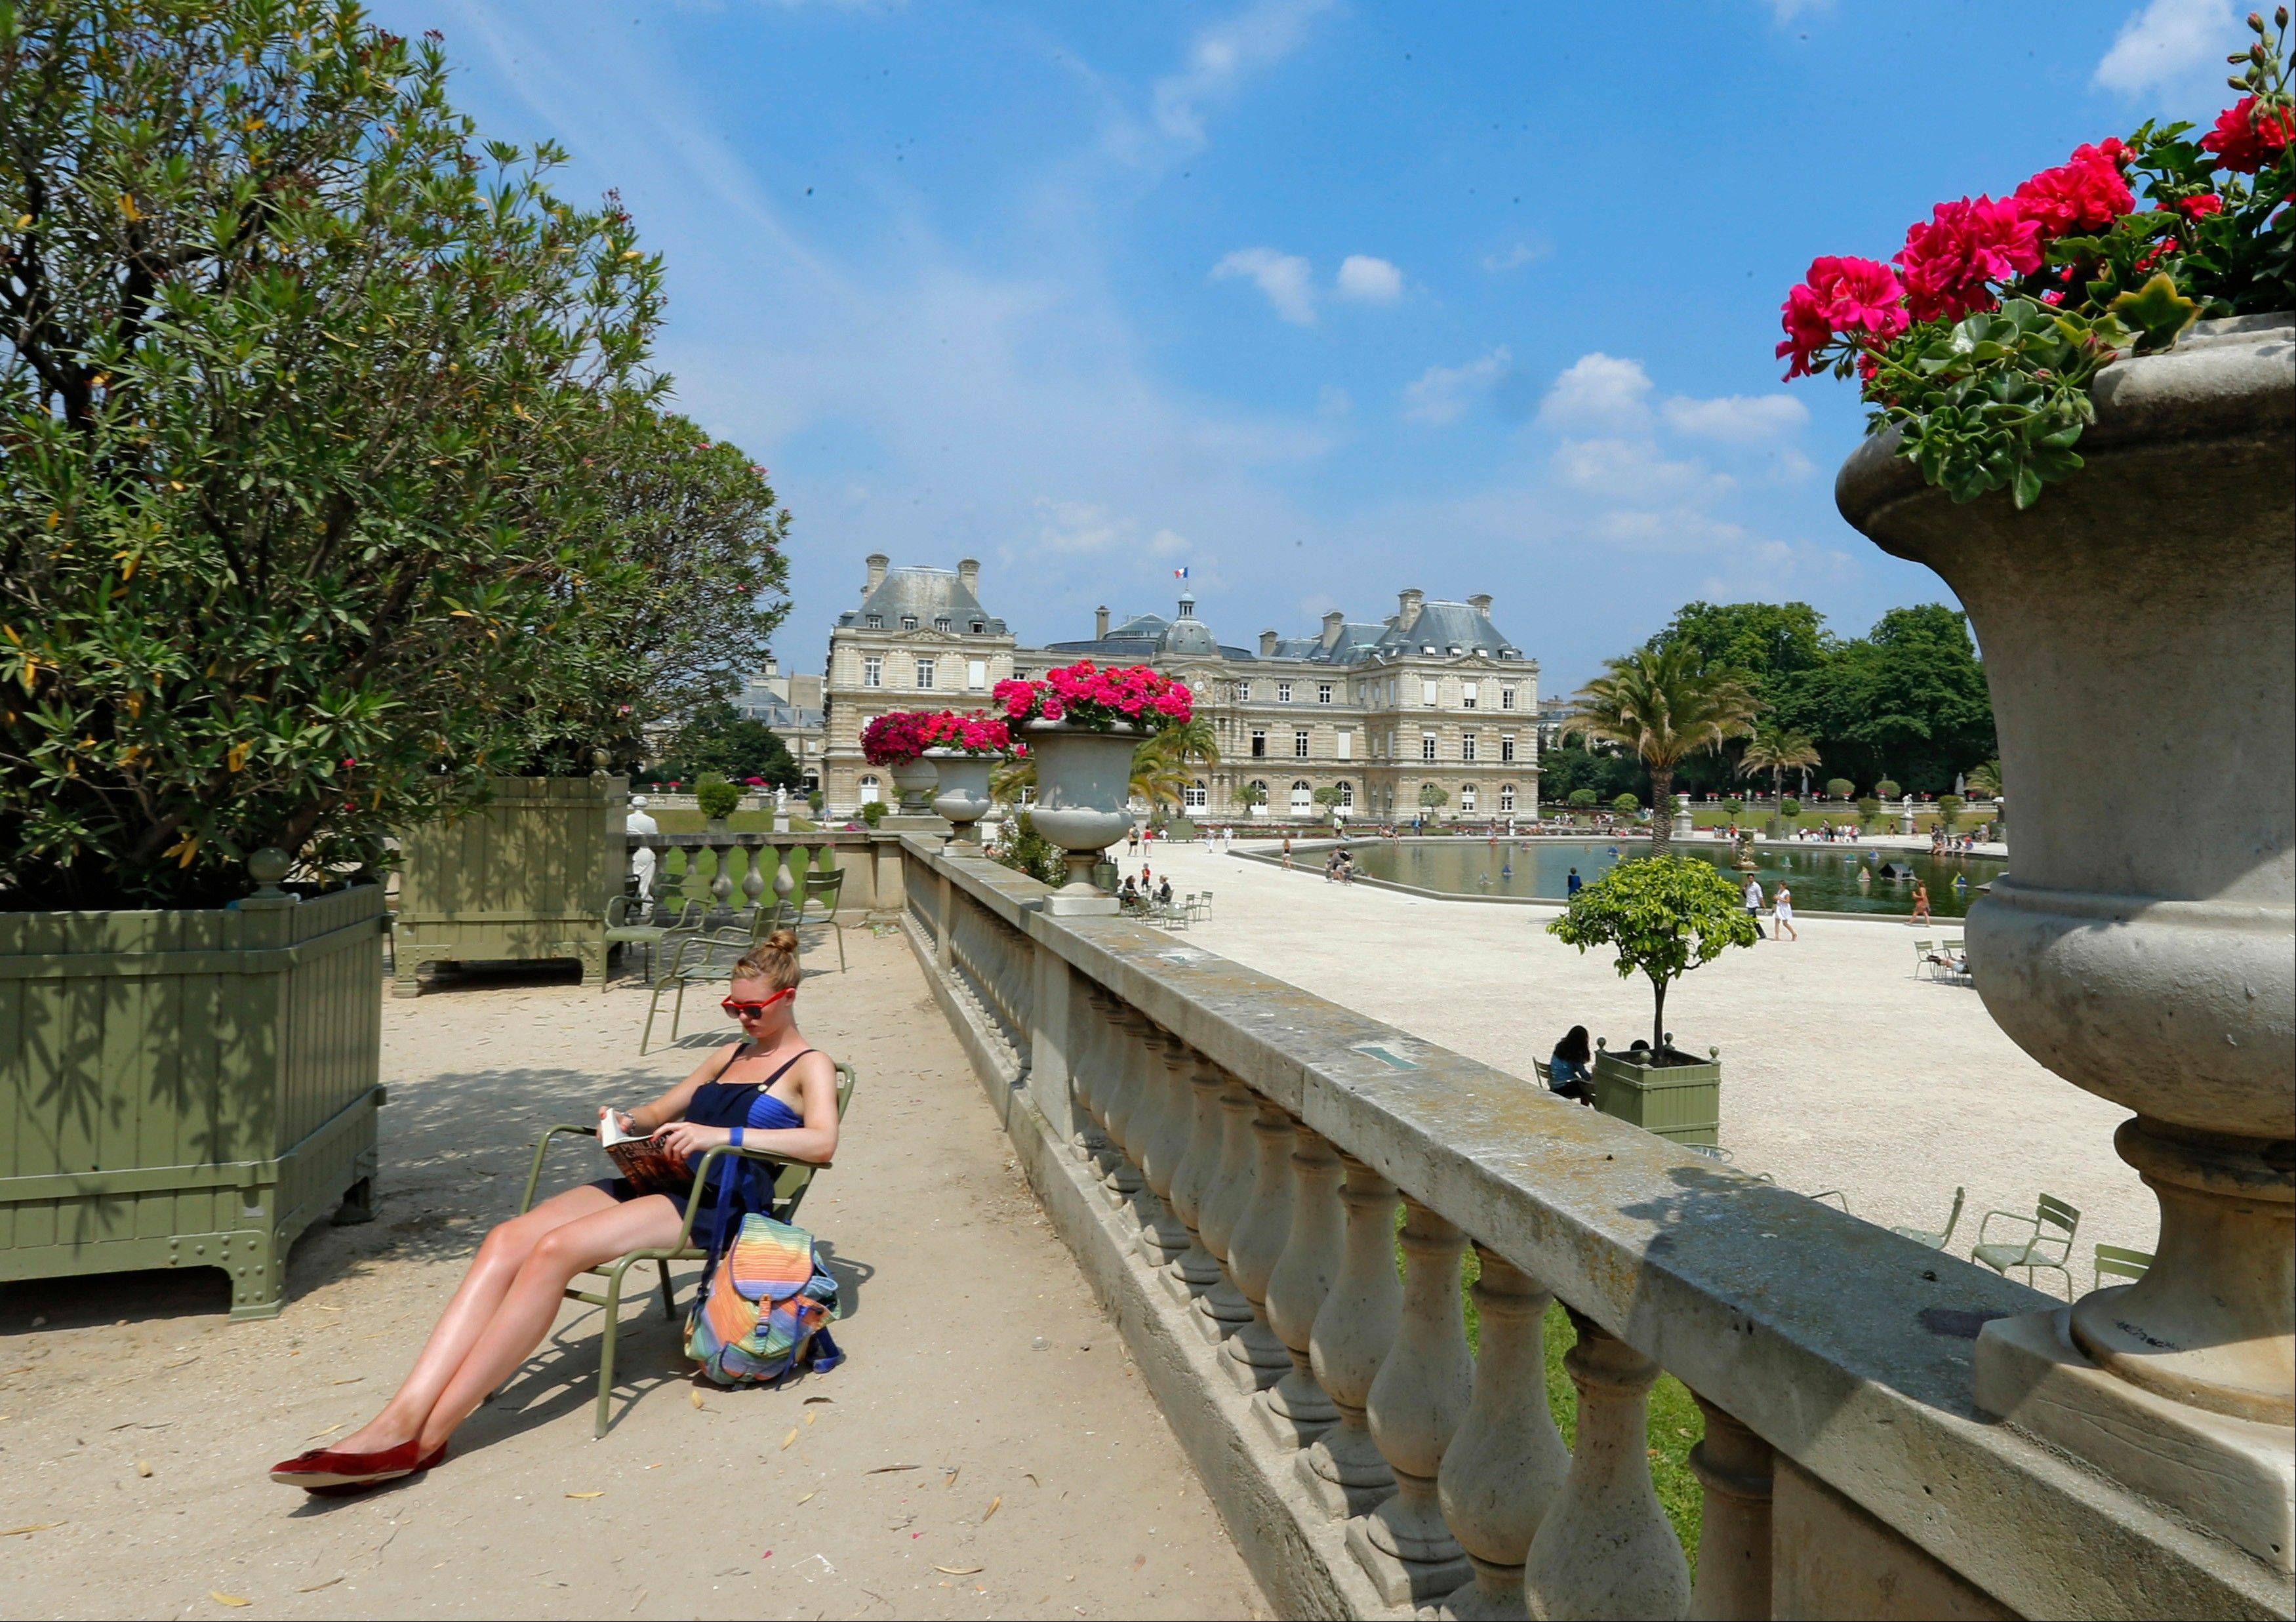 A women sunbathes in the Luxembourg gardens in Paris.